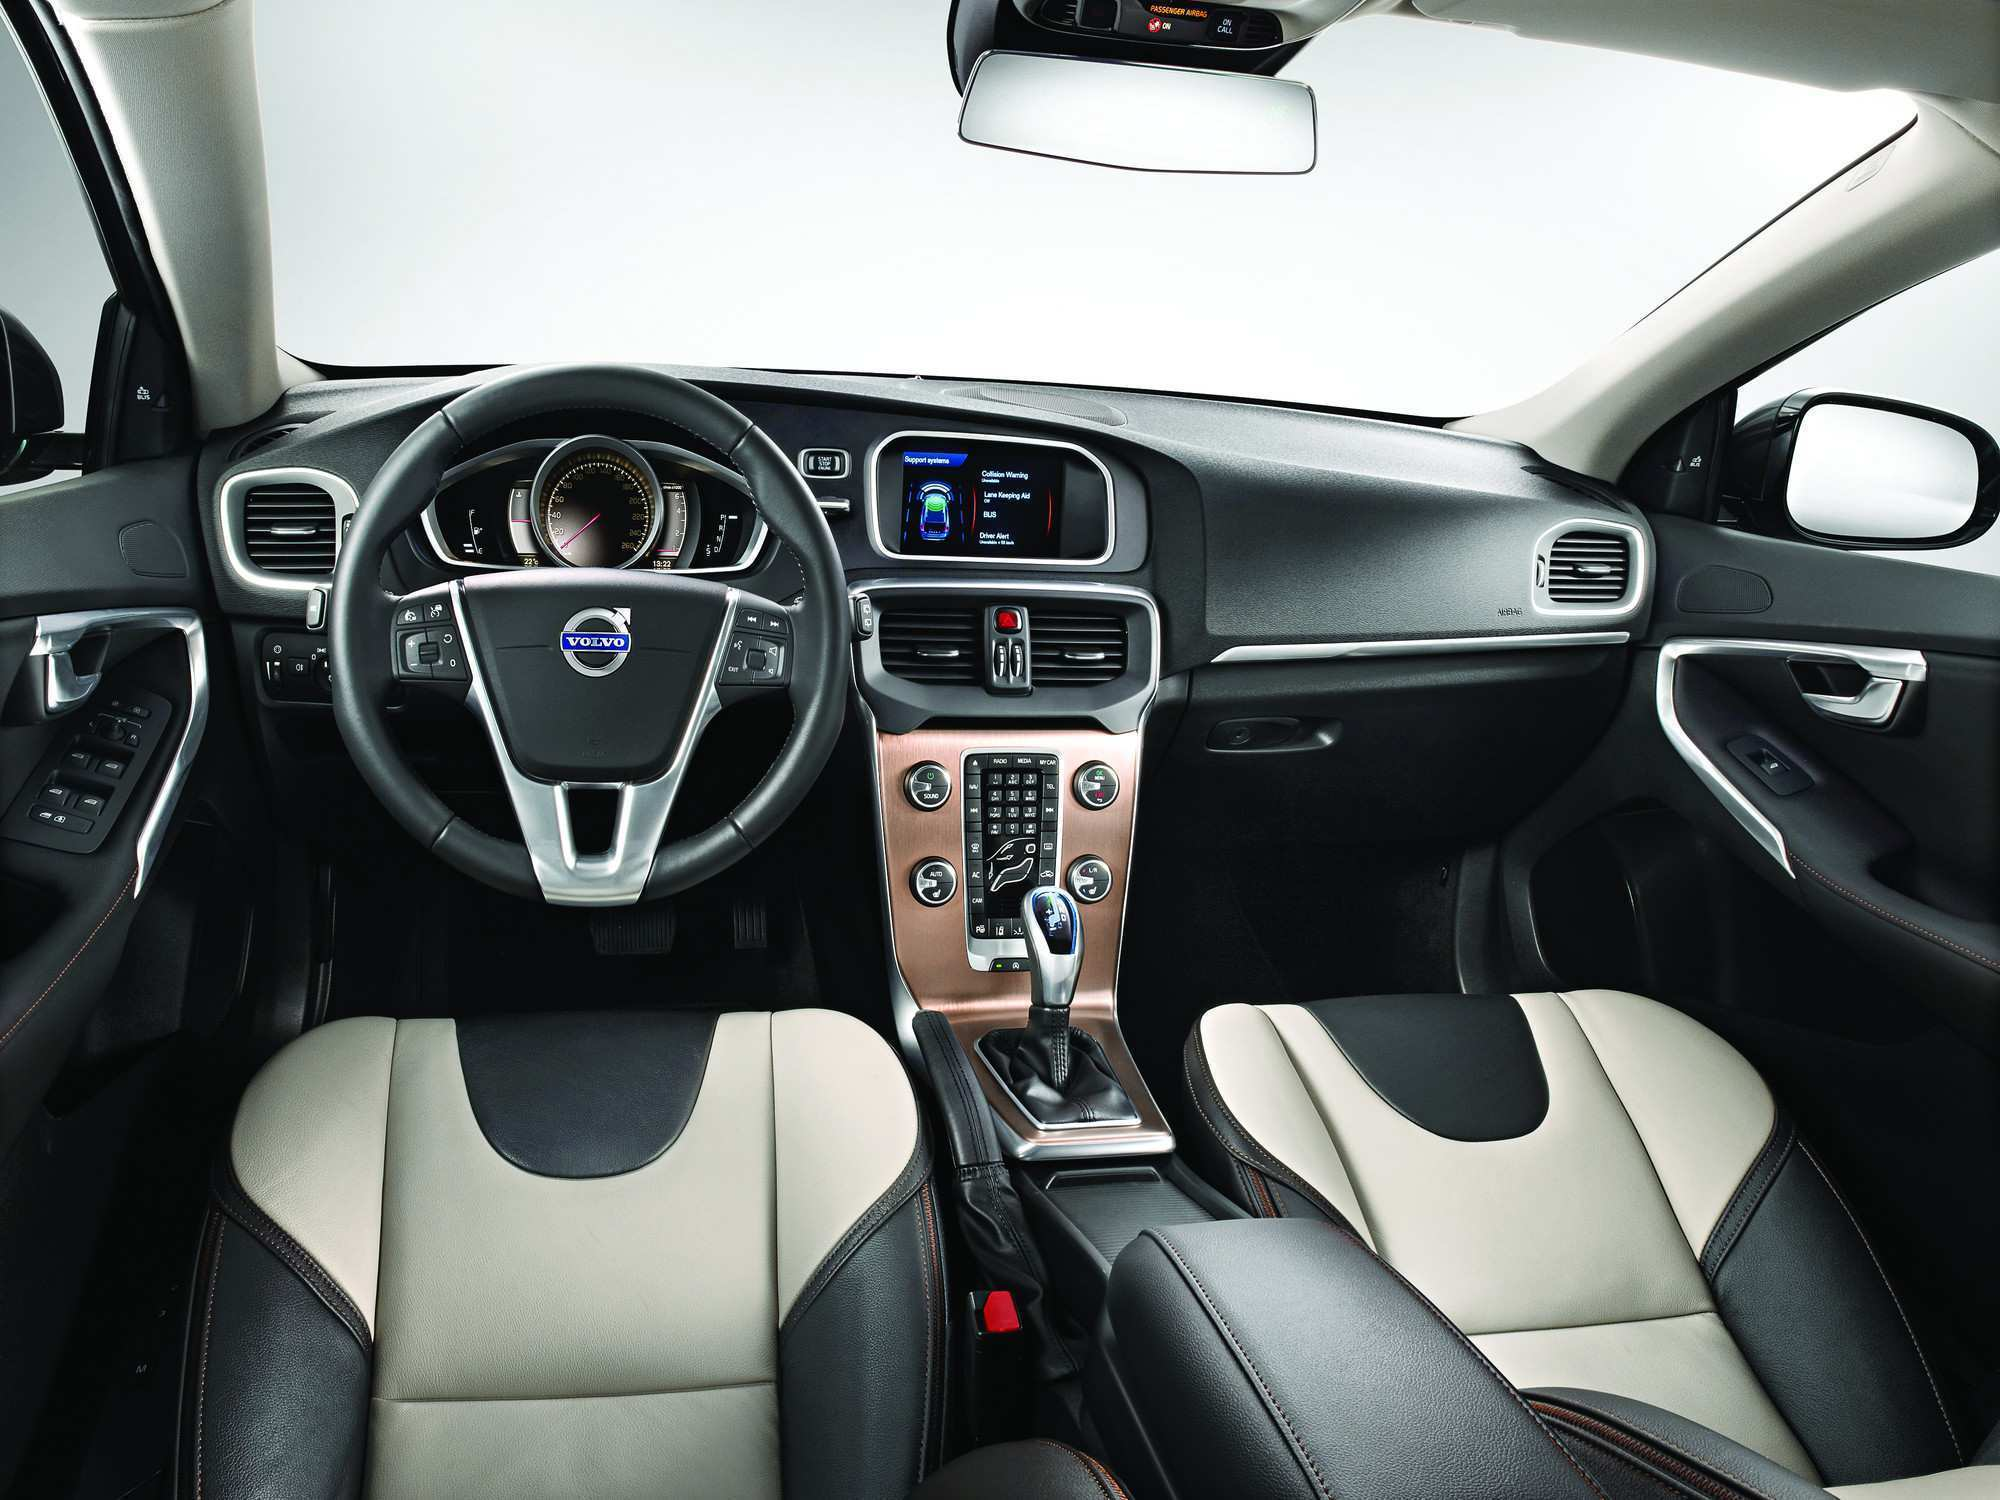 14 All New Volvo V40 2019 Interior Price Design And Review